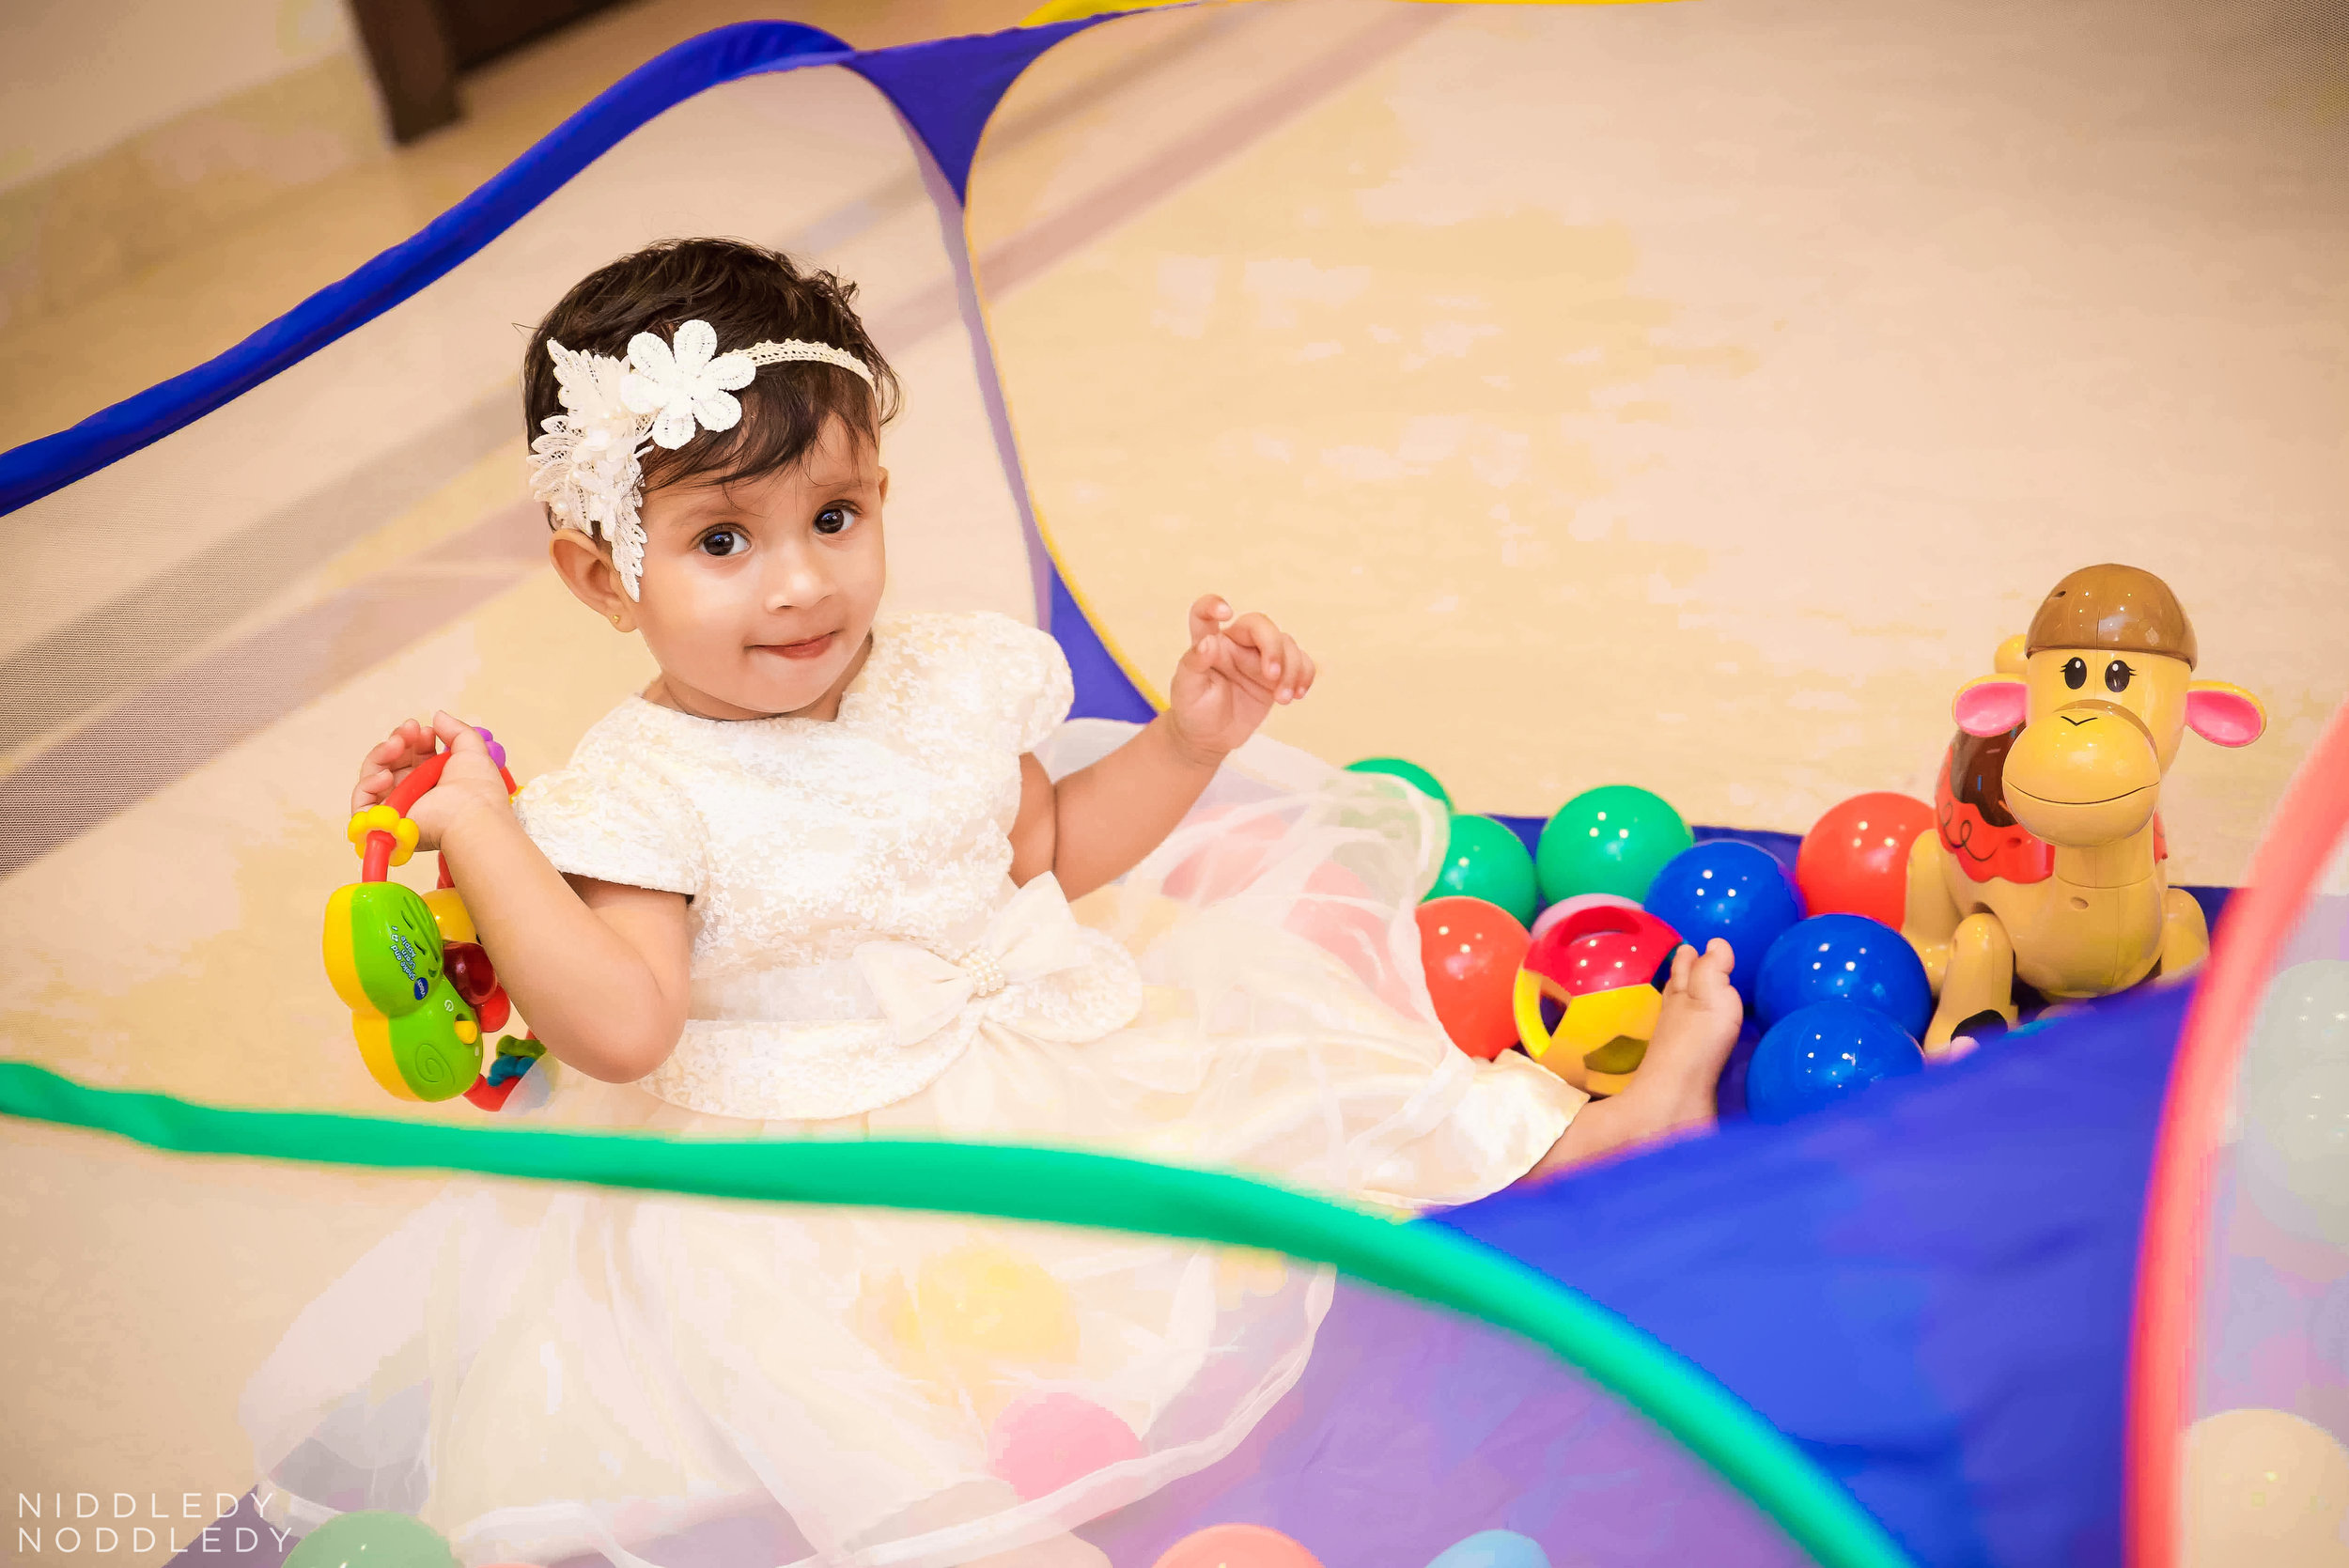 Anaisha Baby Photoshoot ❤ NiddledyNoddledy.com ~ Bumps to Babies Photography, Kolkata - 149.jpg